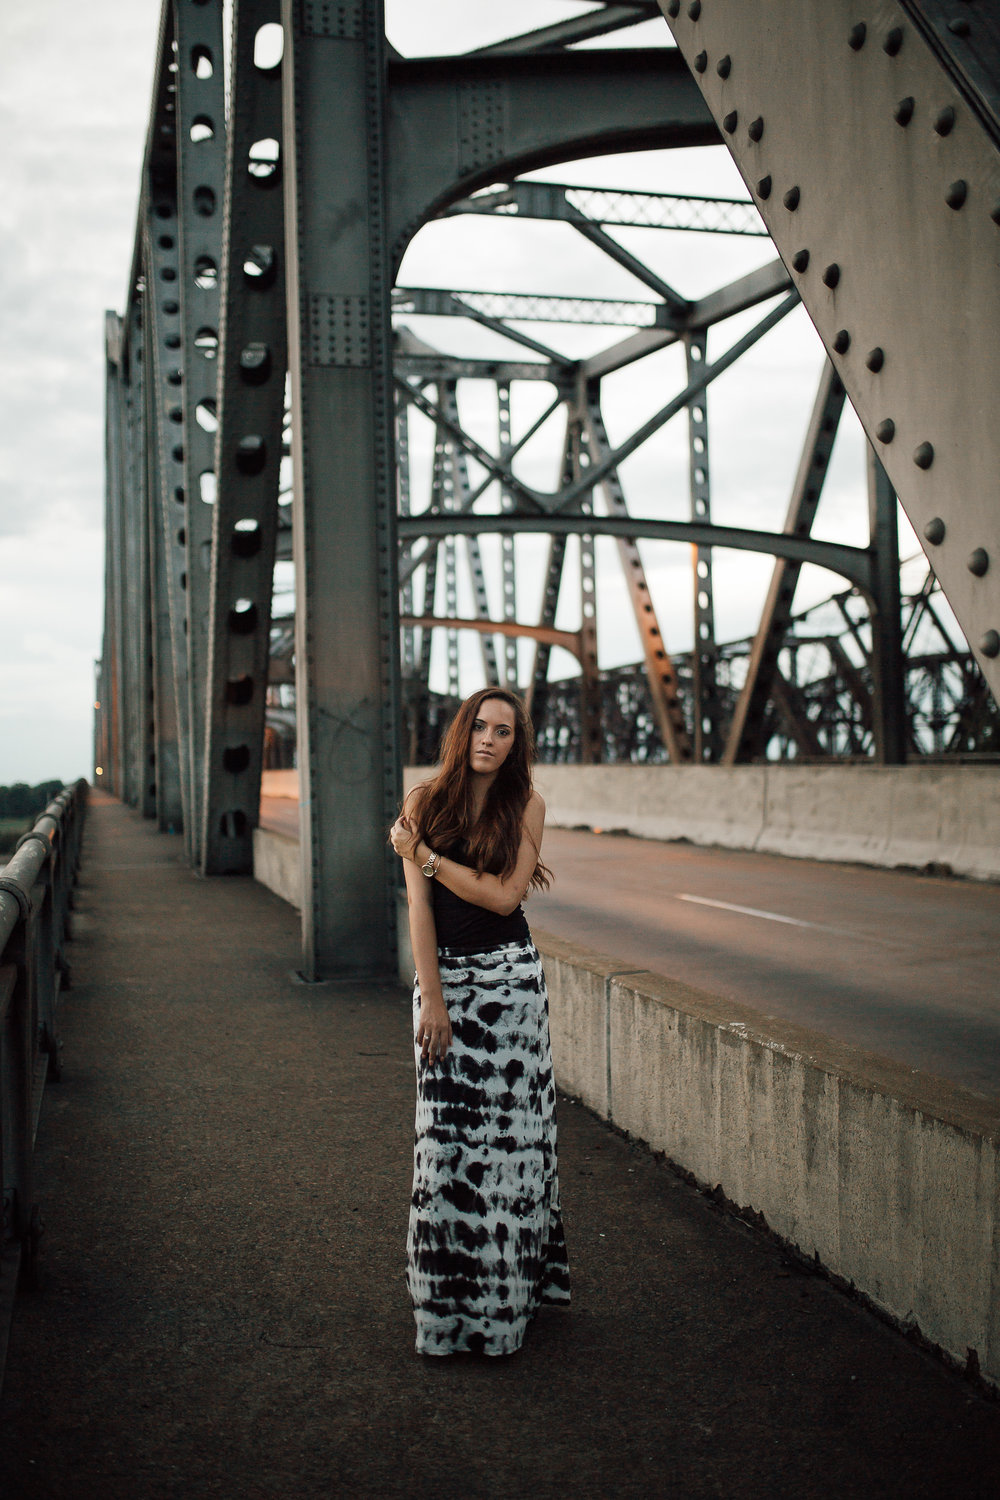 memphis-senior-photographer-senior-portraits-hernando-ms